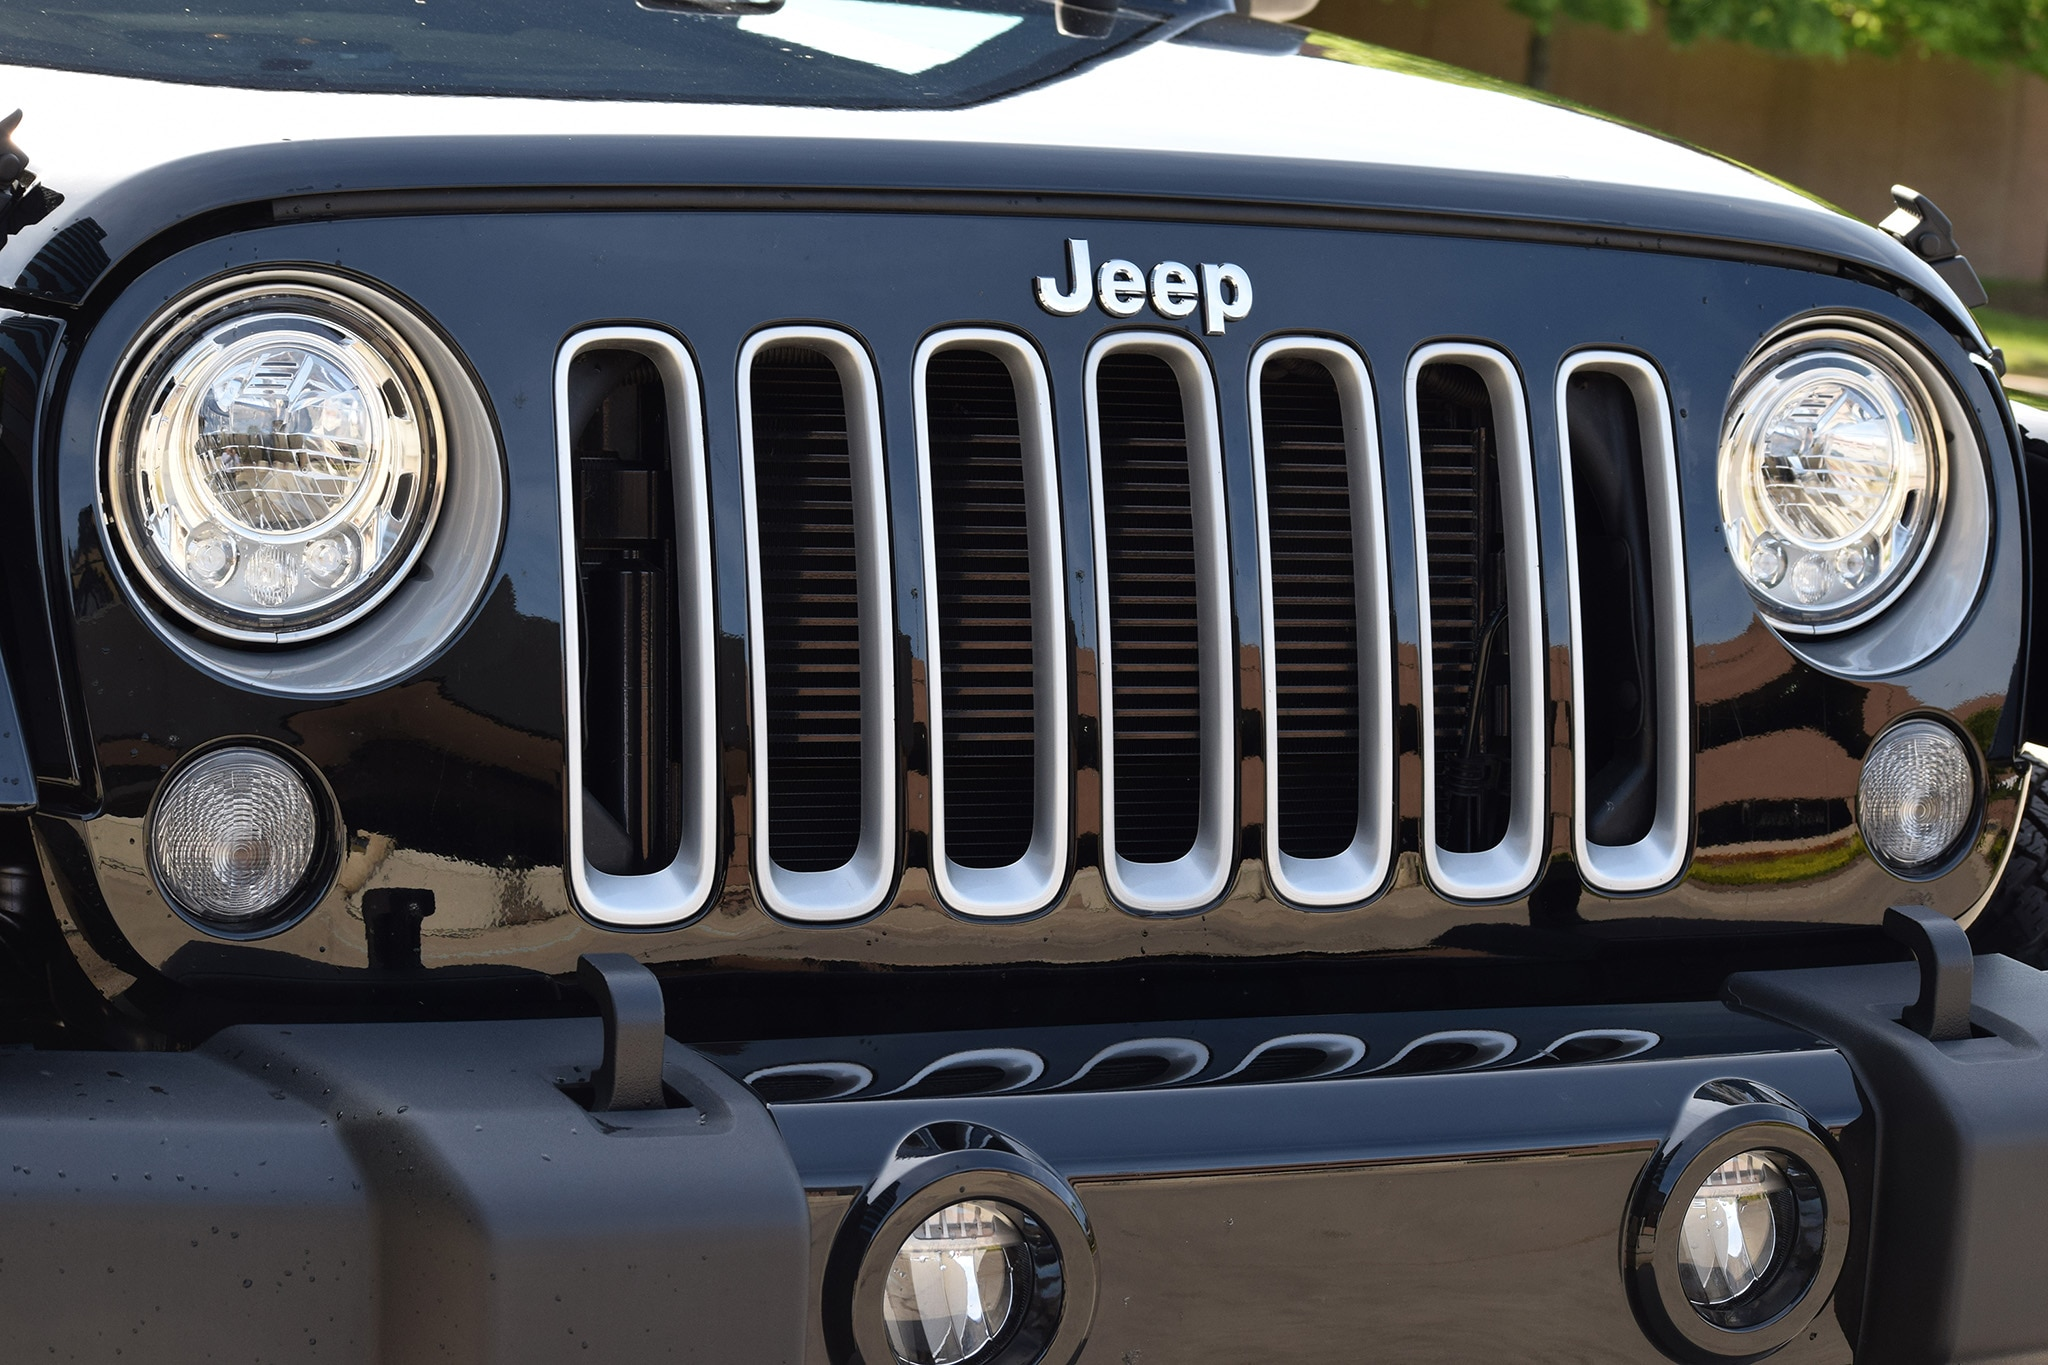 2017 Jeep Wrangler Grille